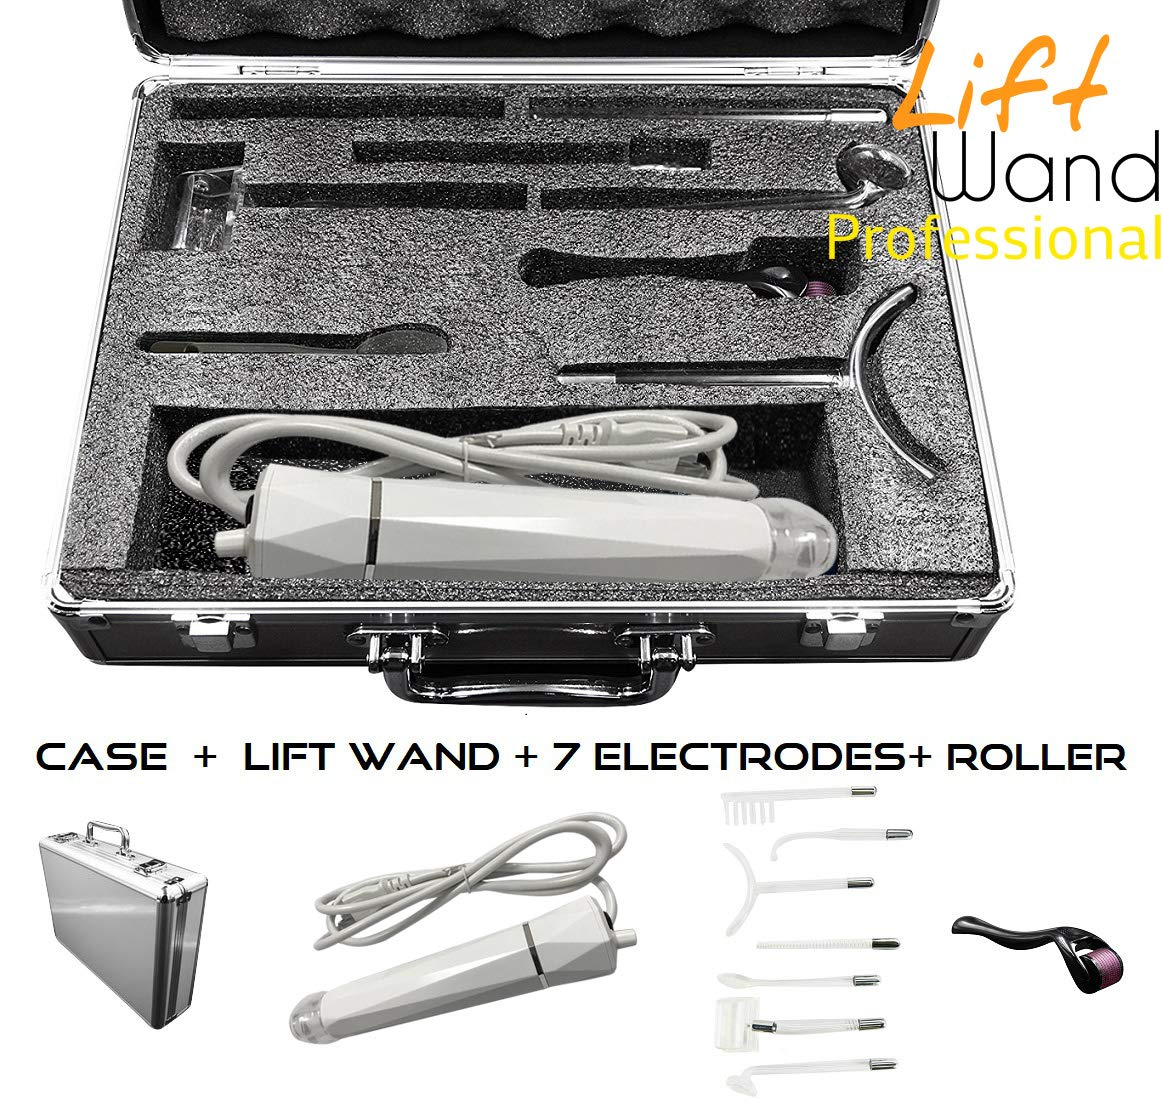 Lift Wand Professional High Frequency Machine Includes 7 Electrodes, Roller and Alumimum Case, Anti Aging Device, Diminish Wrinkles, Scars, Dark Circles, Breakthrough Device for Beauty, Anti Aging by Lift Care